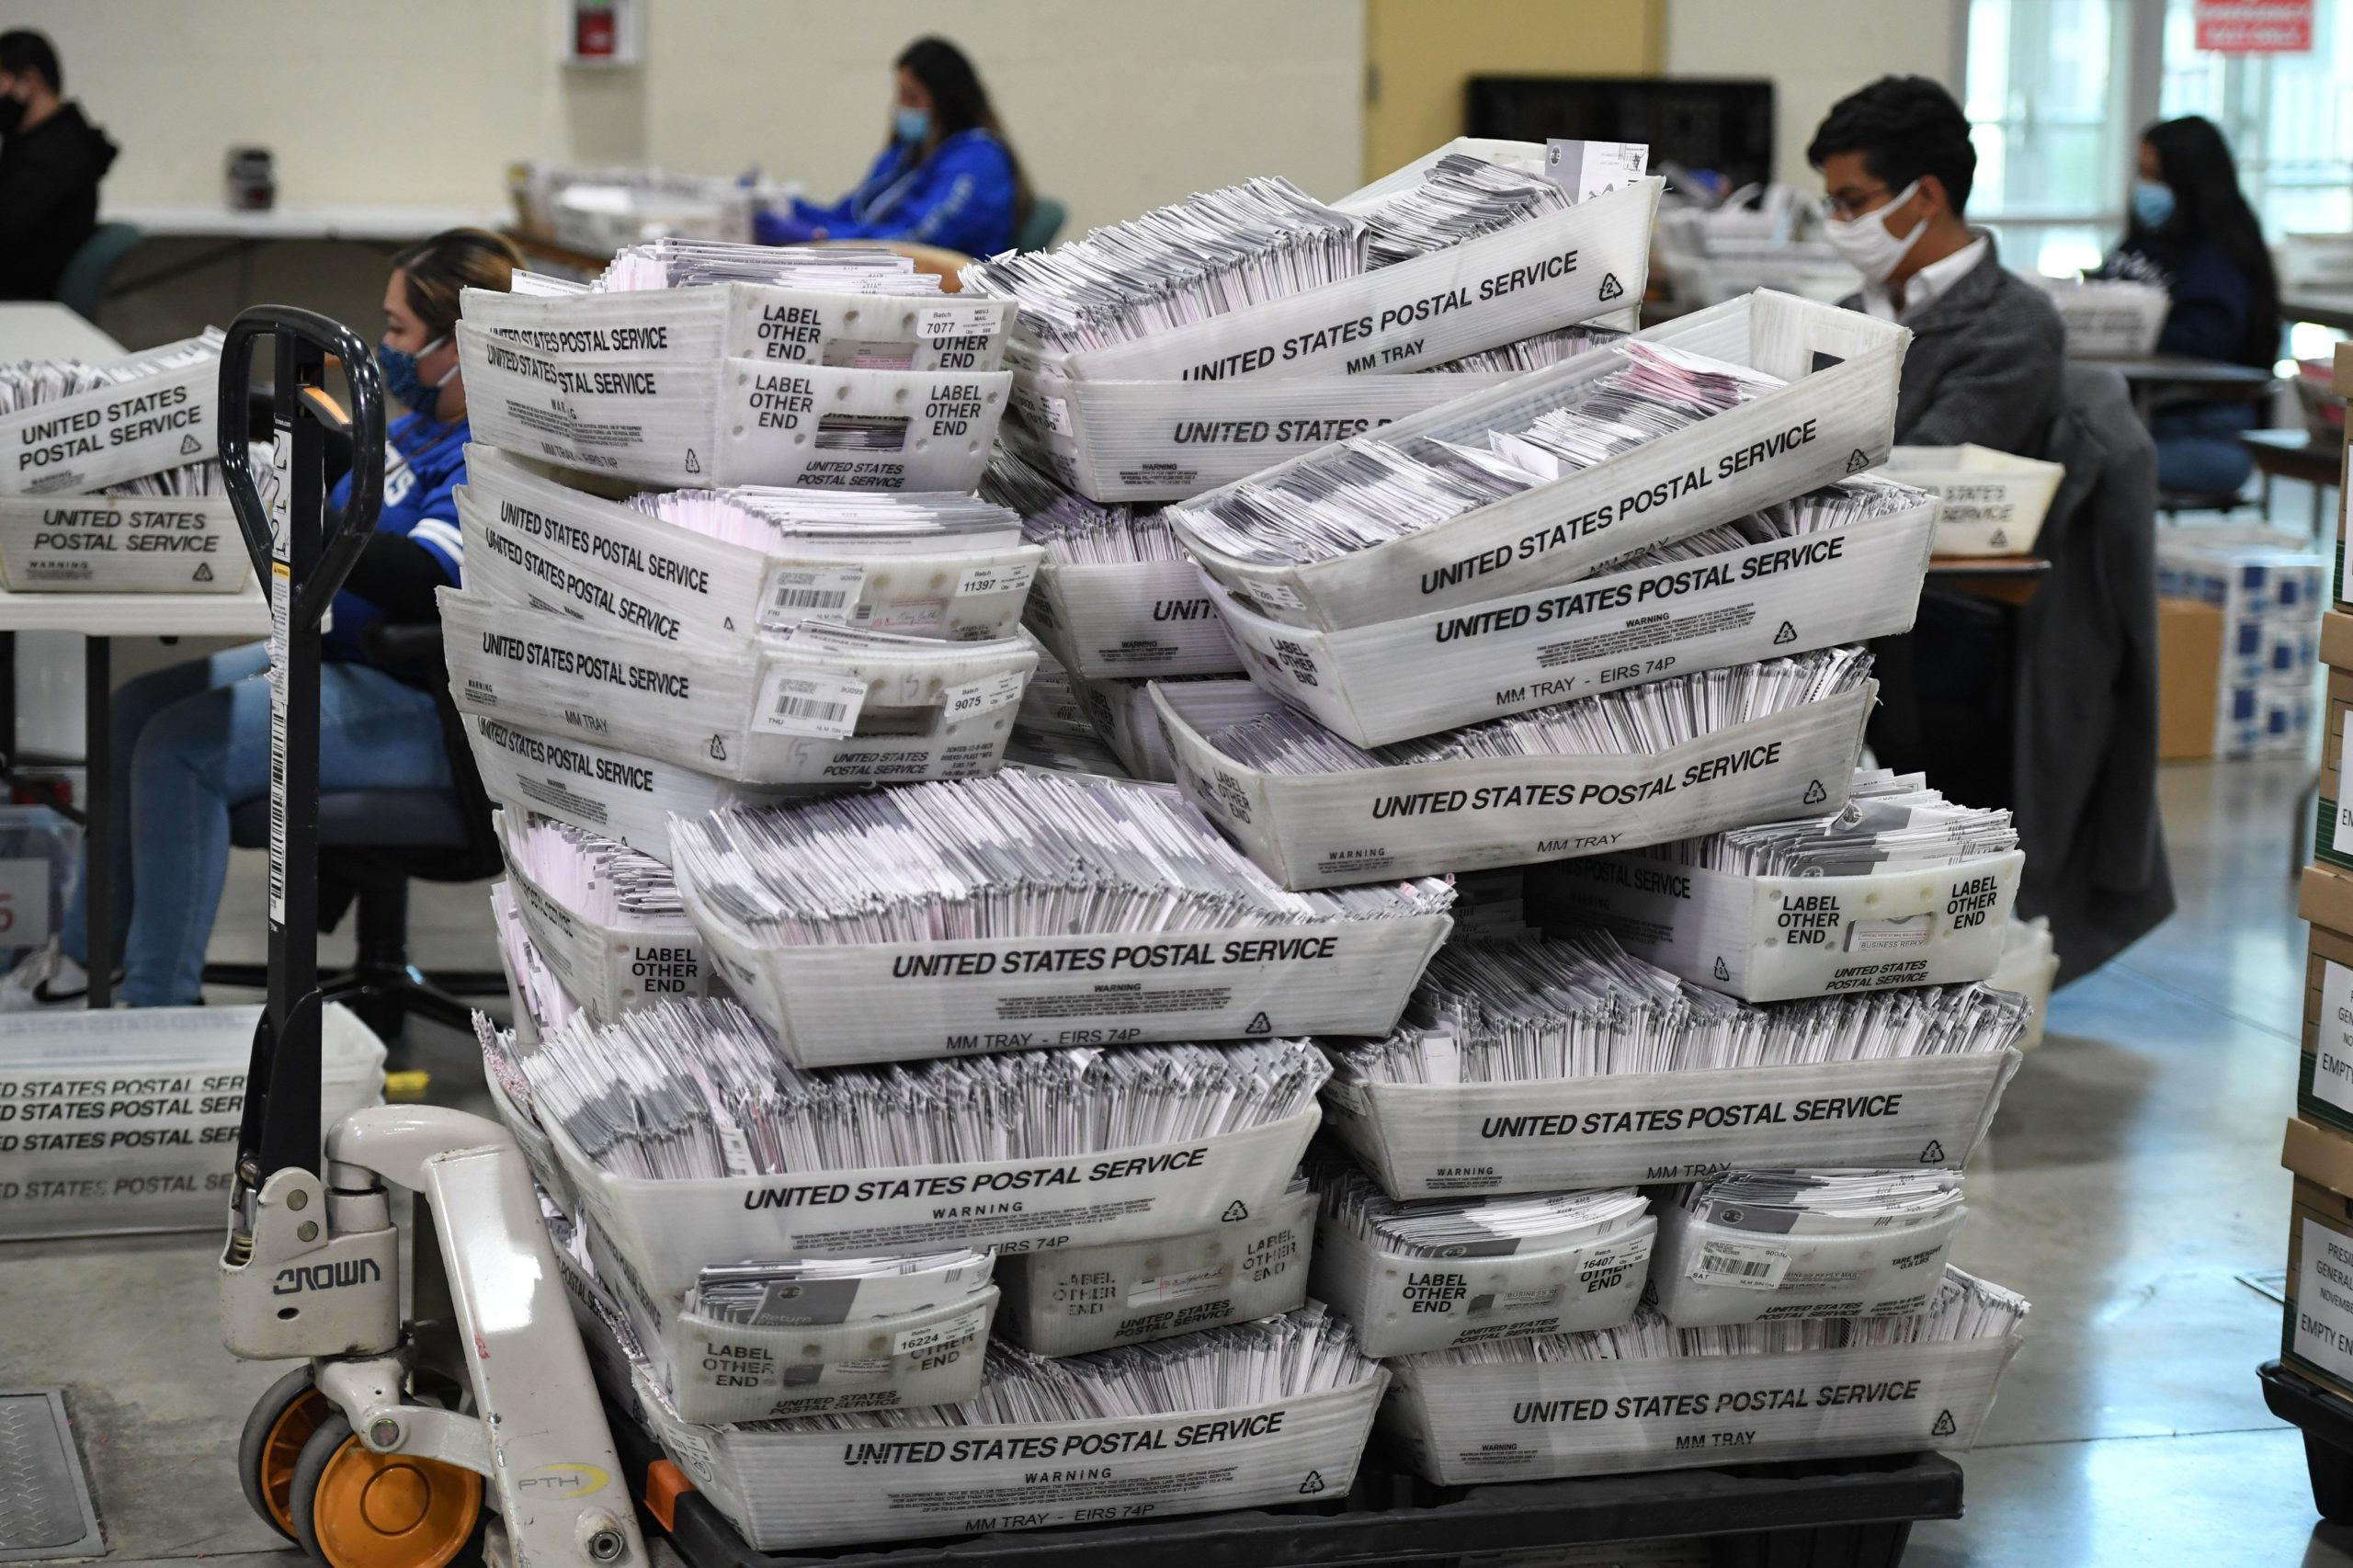 Bins of mail-in ballots await distribution at the Los Angeles County Registrar Recorders' mail-in ballot processing center on Oct. 28. (Robyn Beck/AFP via Getty Images)